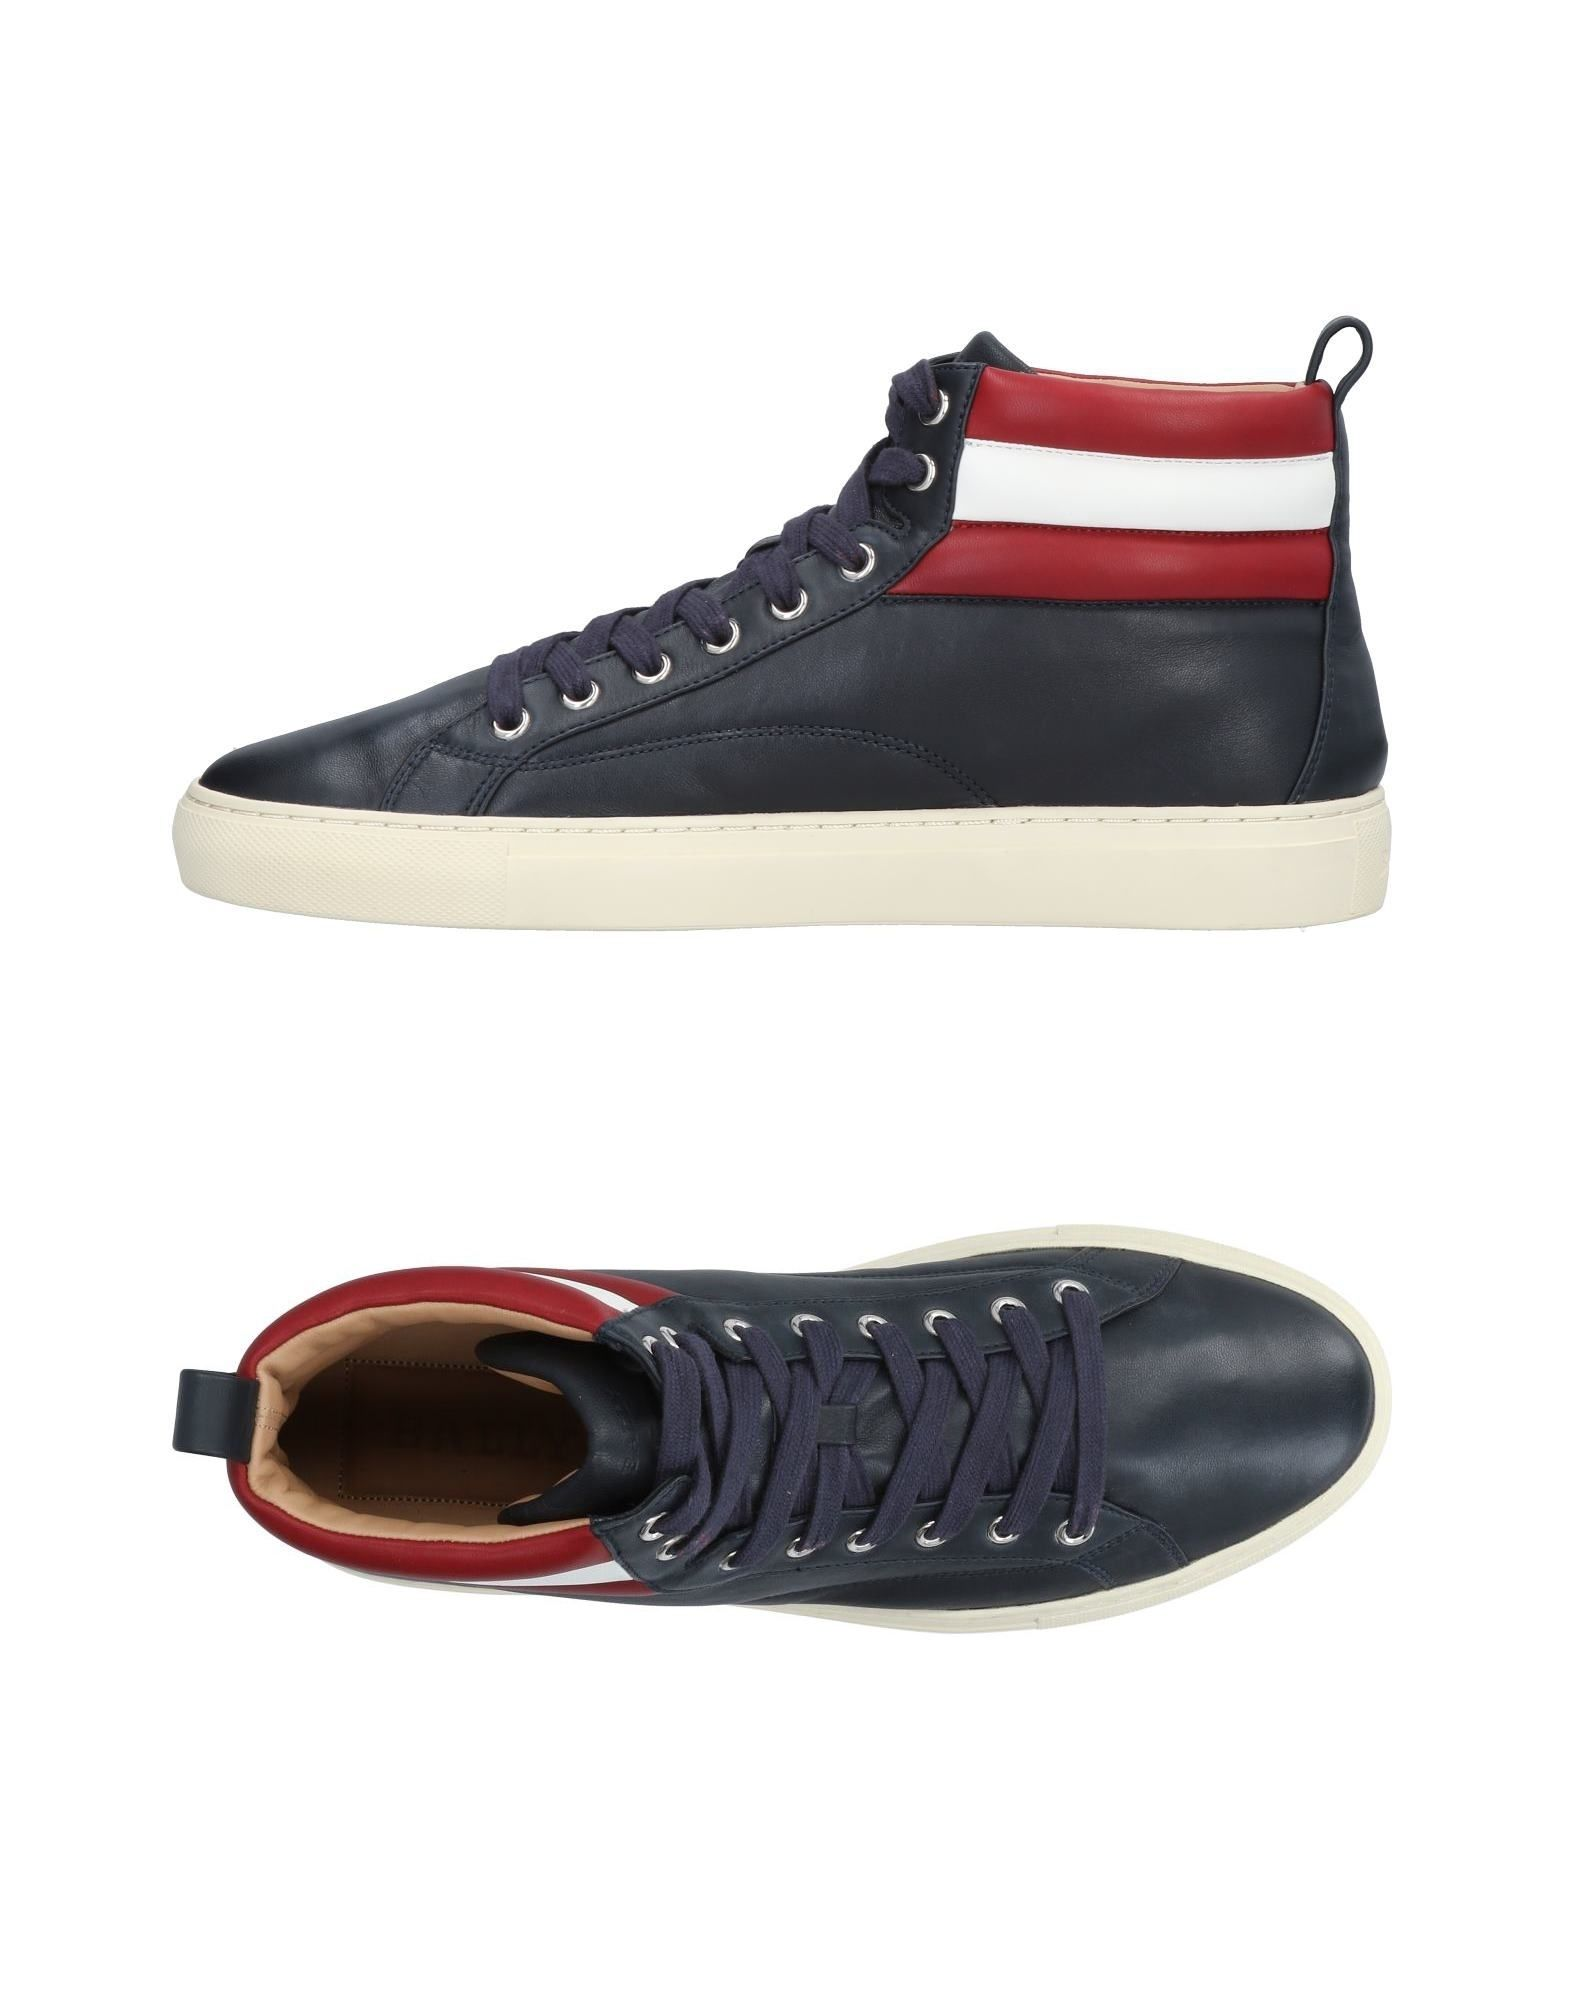 Moda Sneakers Bally Uomo - 11476596QF